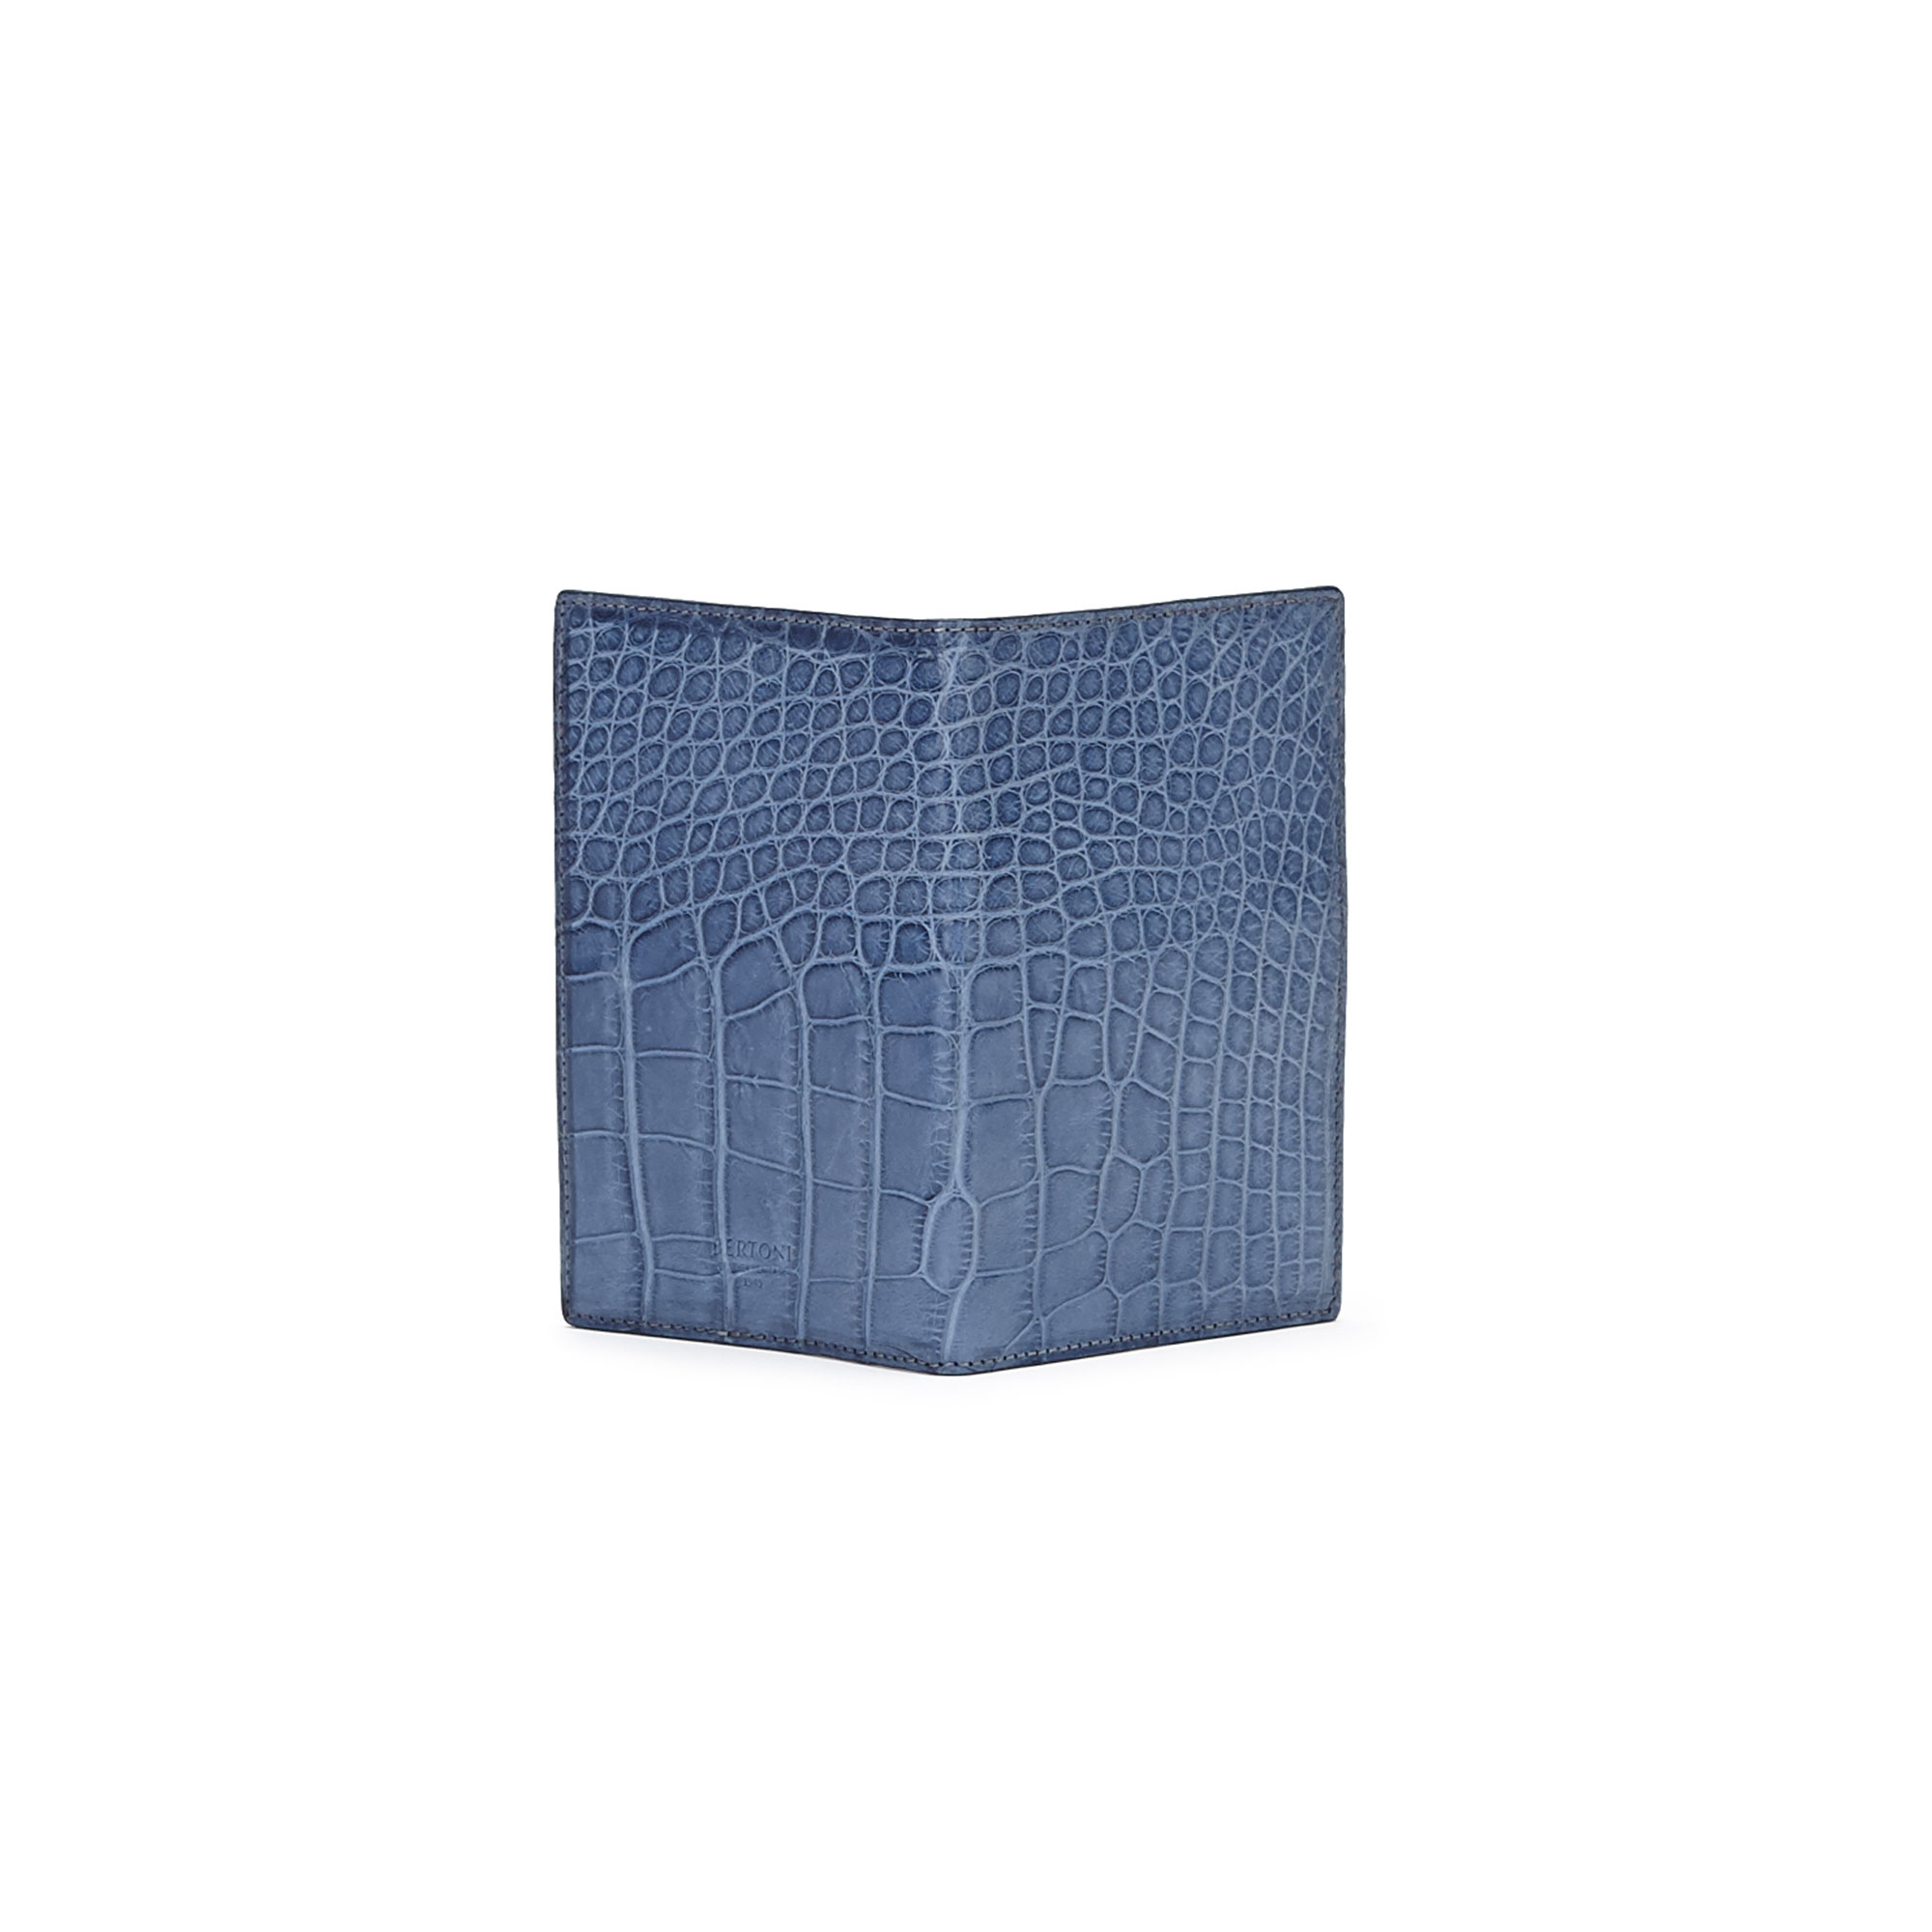 The navy alligator Passport Case by Bertoni 1949 02